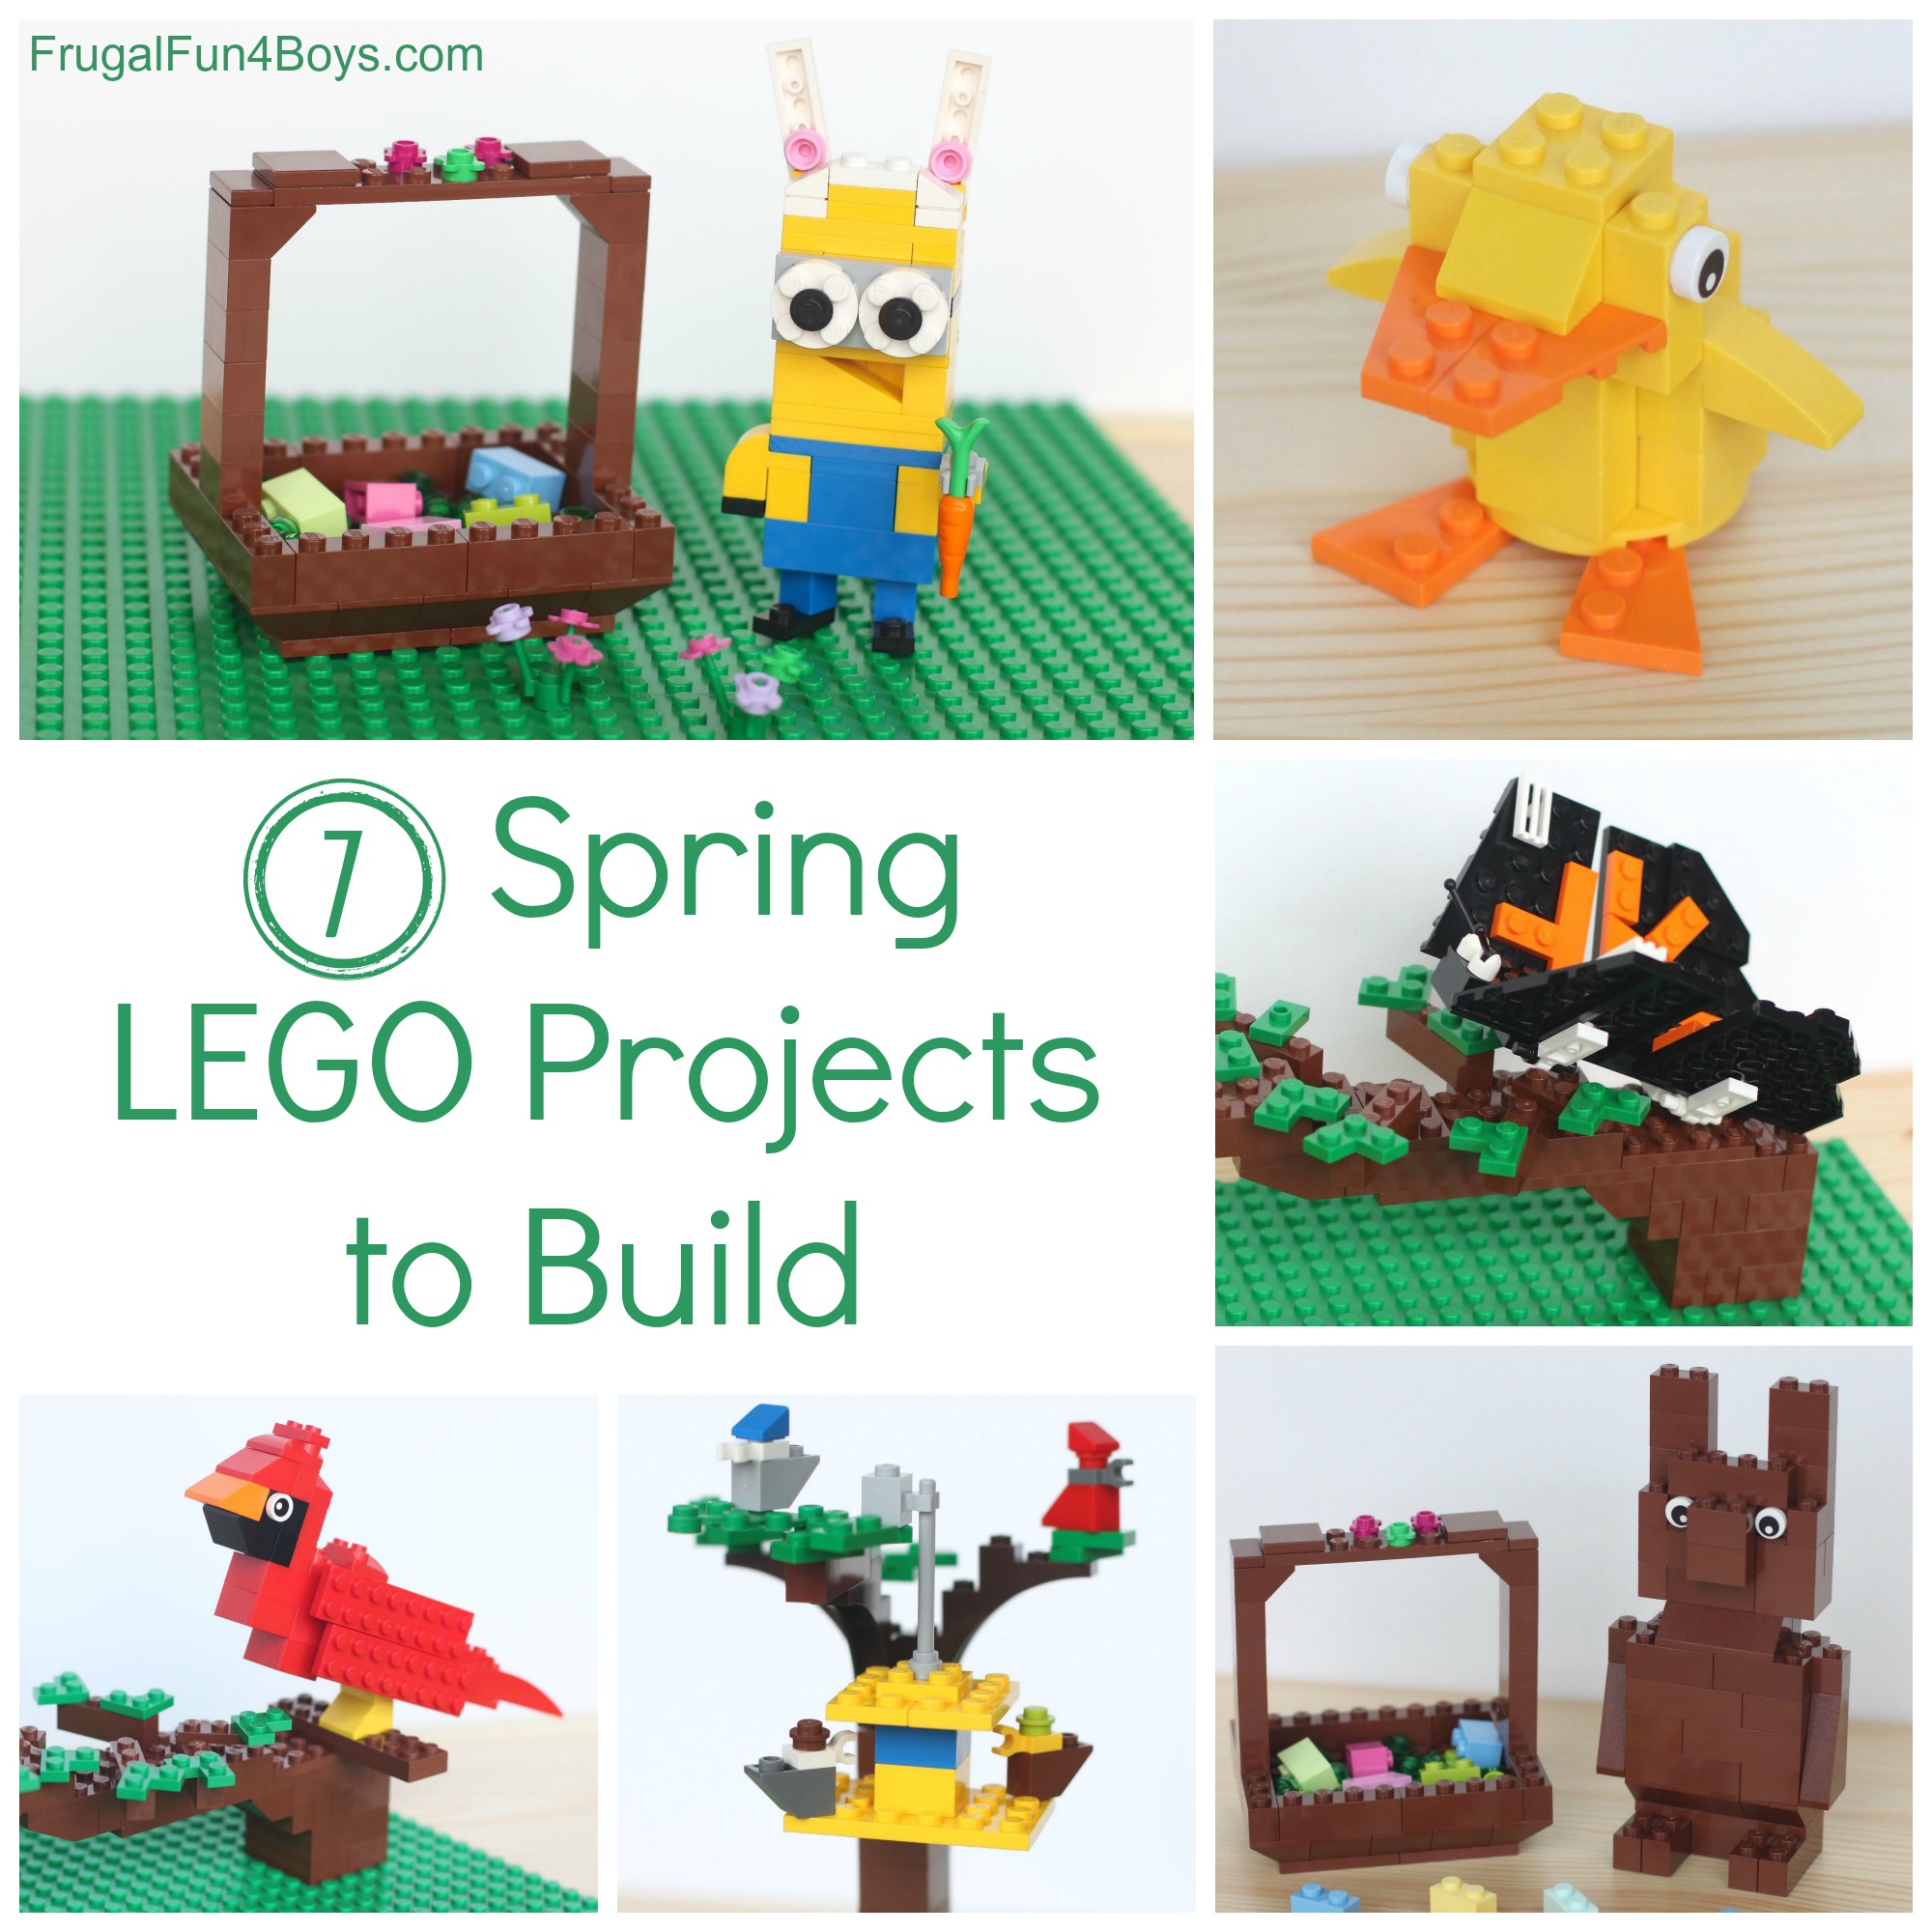 Seven Spring LEGO Ideas! Projects to Build with Instructions - Frugal Fun For Boys and Girls